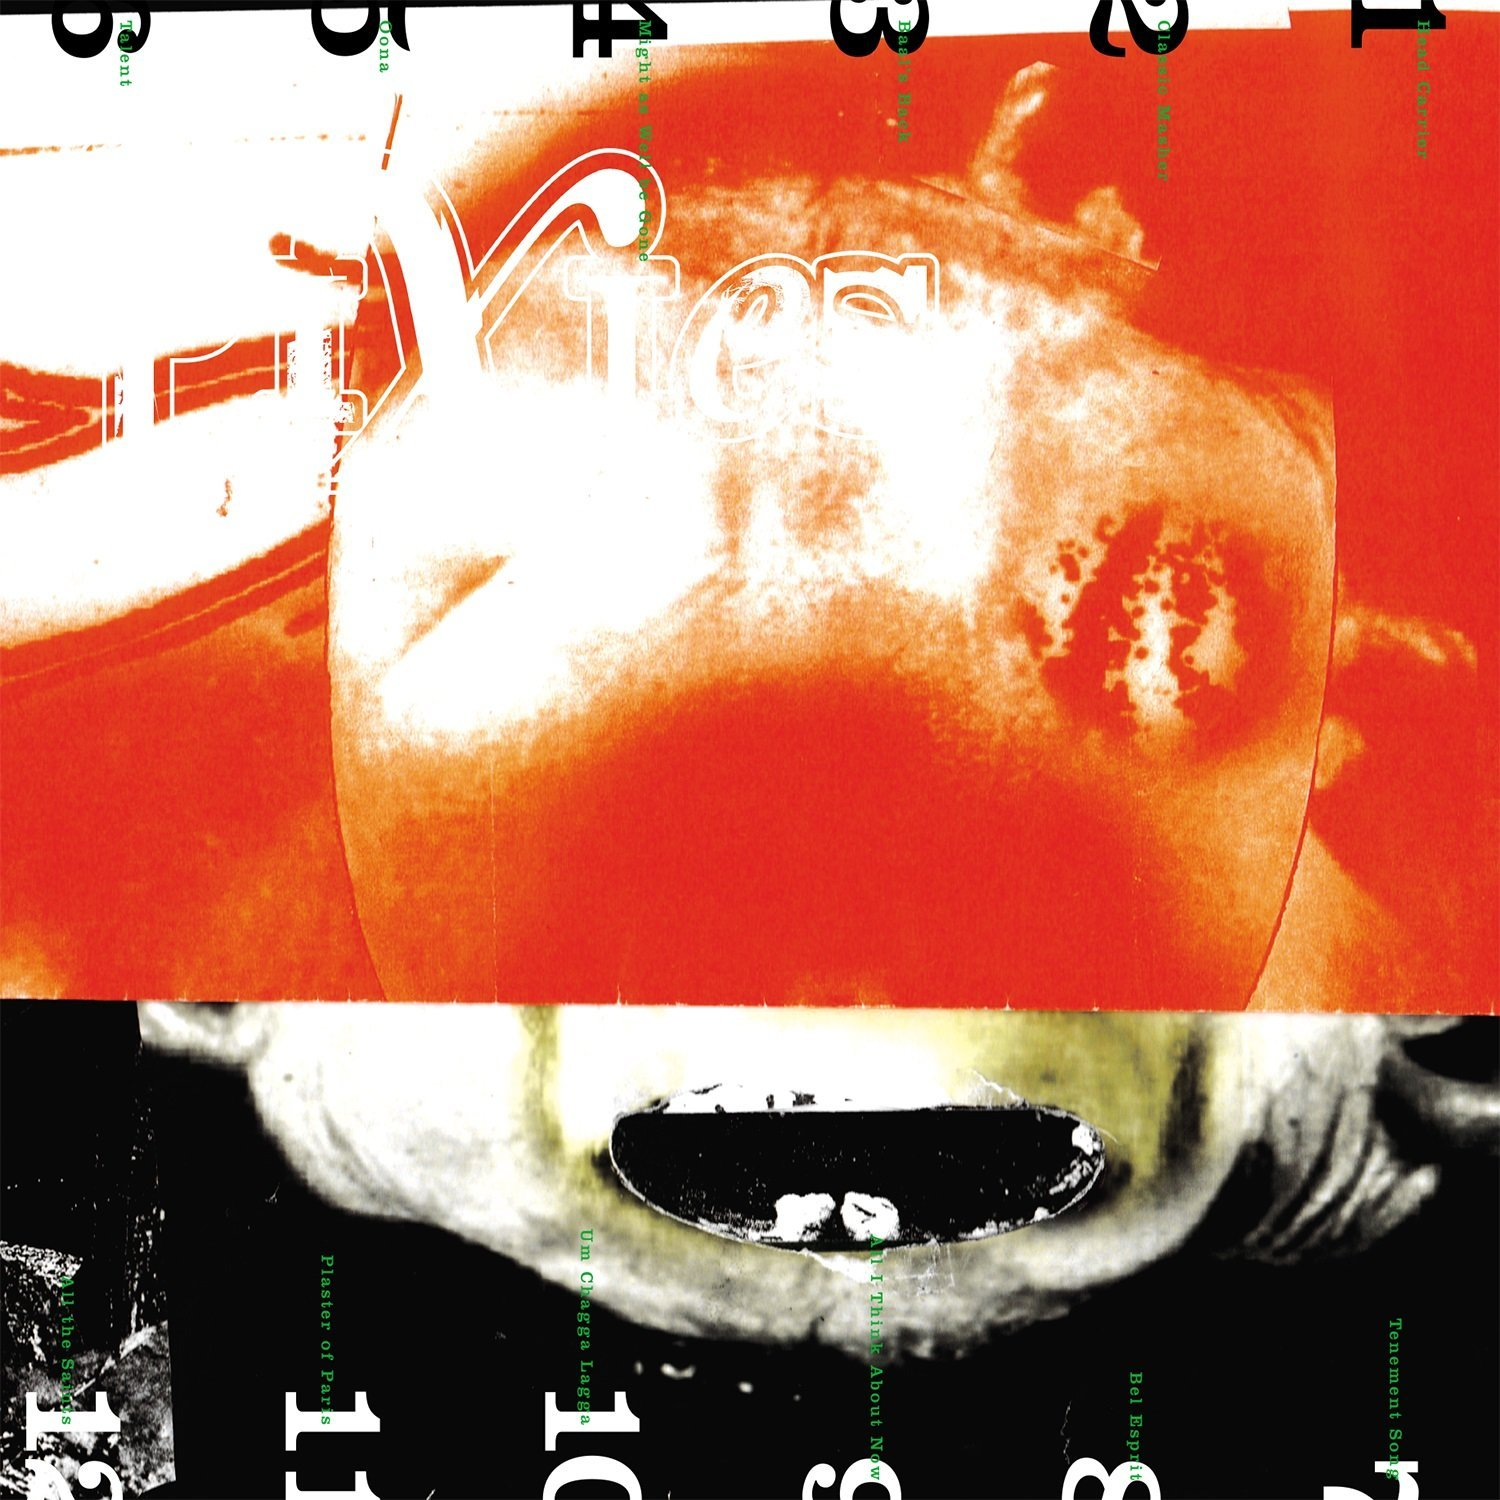 pixies - Head Carrier.jpg - 306.77 KB